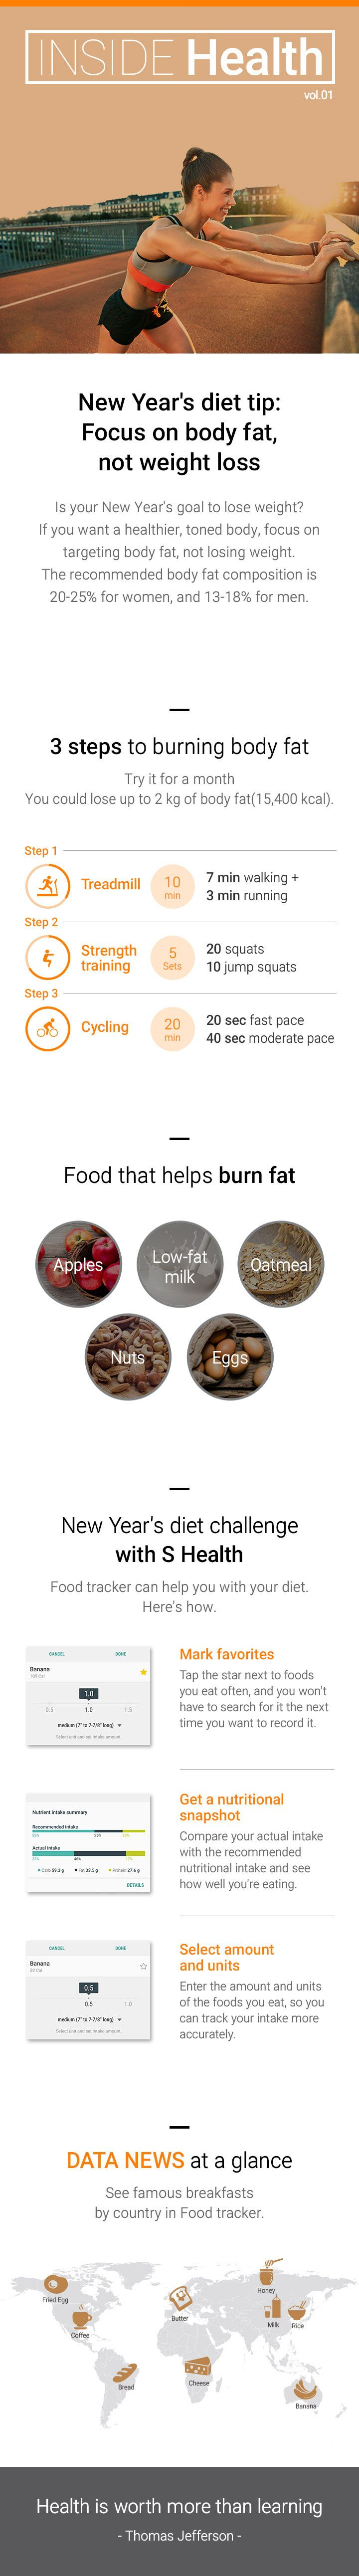 New Year's diet tip: Focus on body fat not weight loss. Food that help's burn fat.